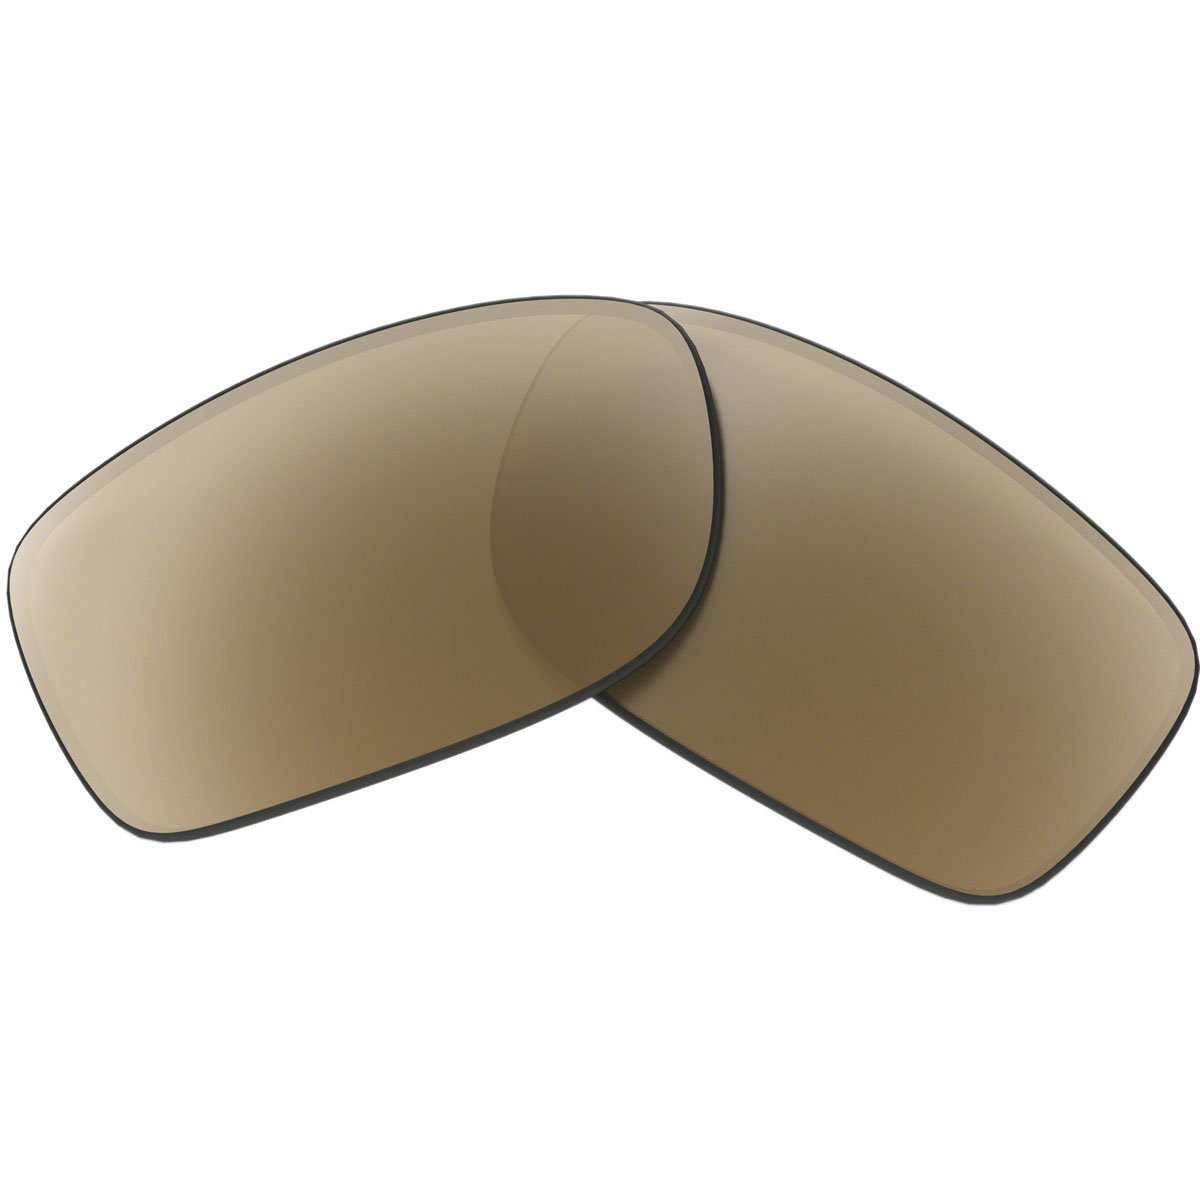 Oakley Fives Squared/Fives 3.0 Men's Active Replacement Lens Lifestyle Sunglass Accessories - Bronze Polarized / One Size